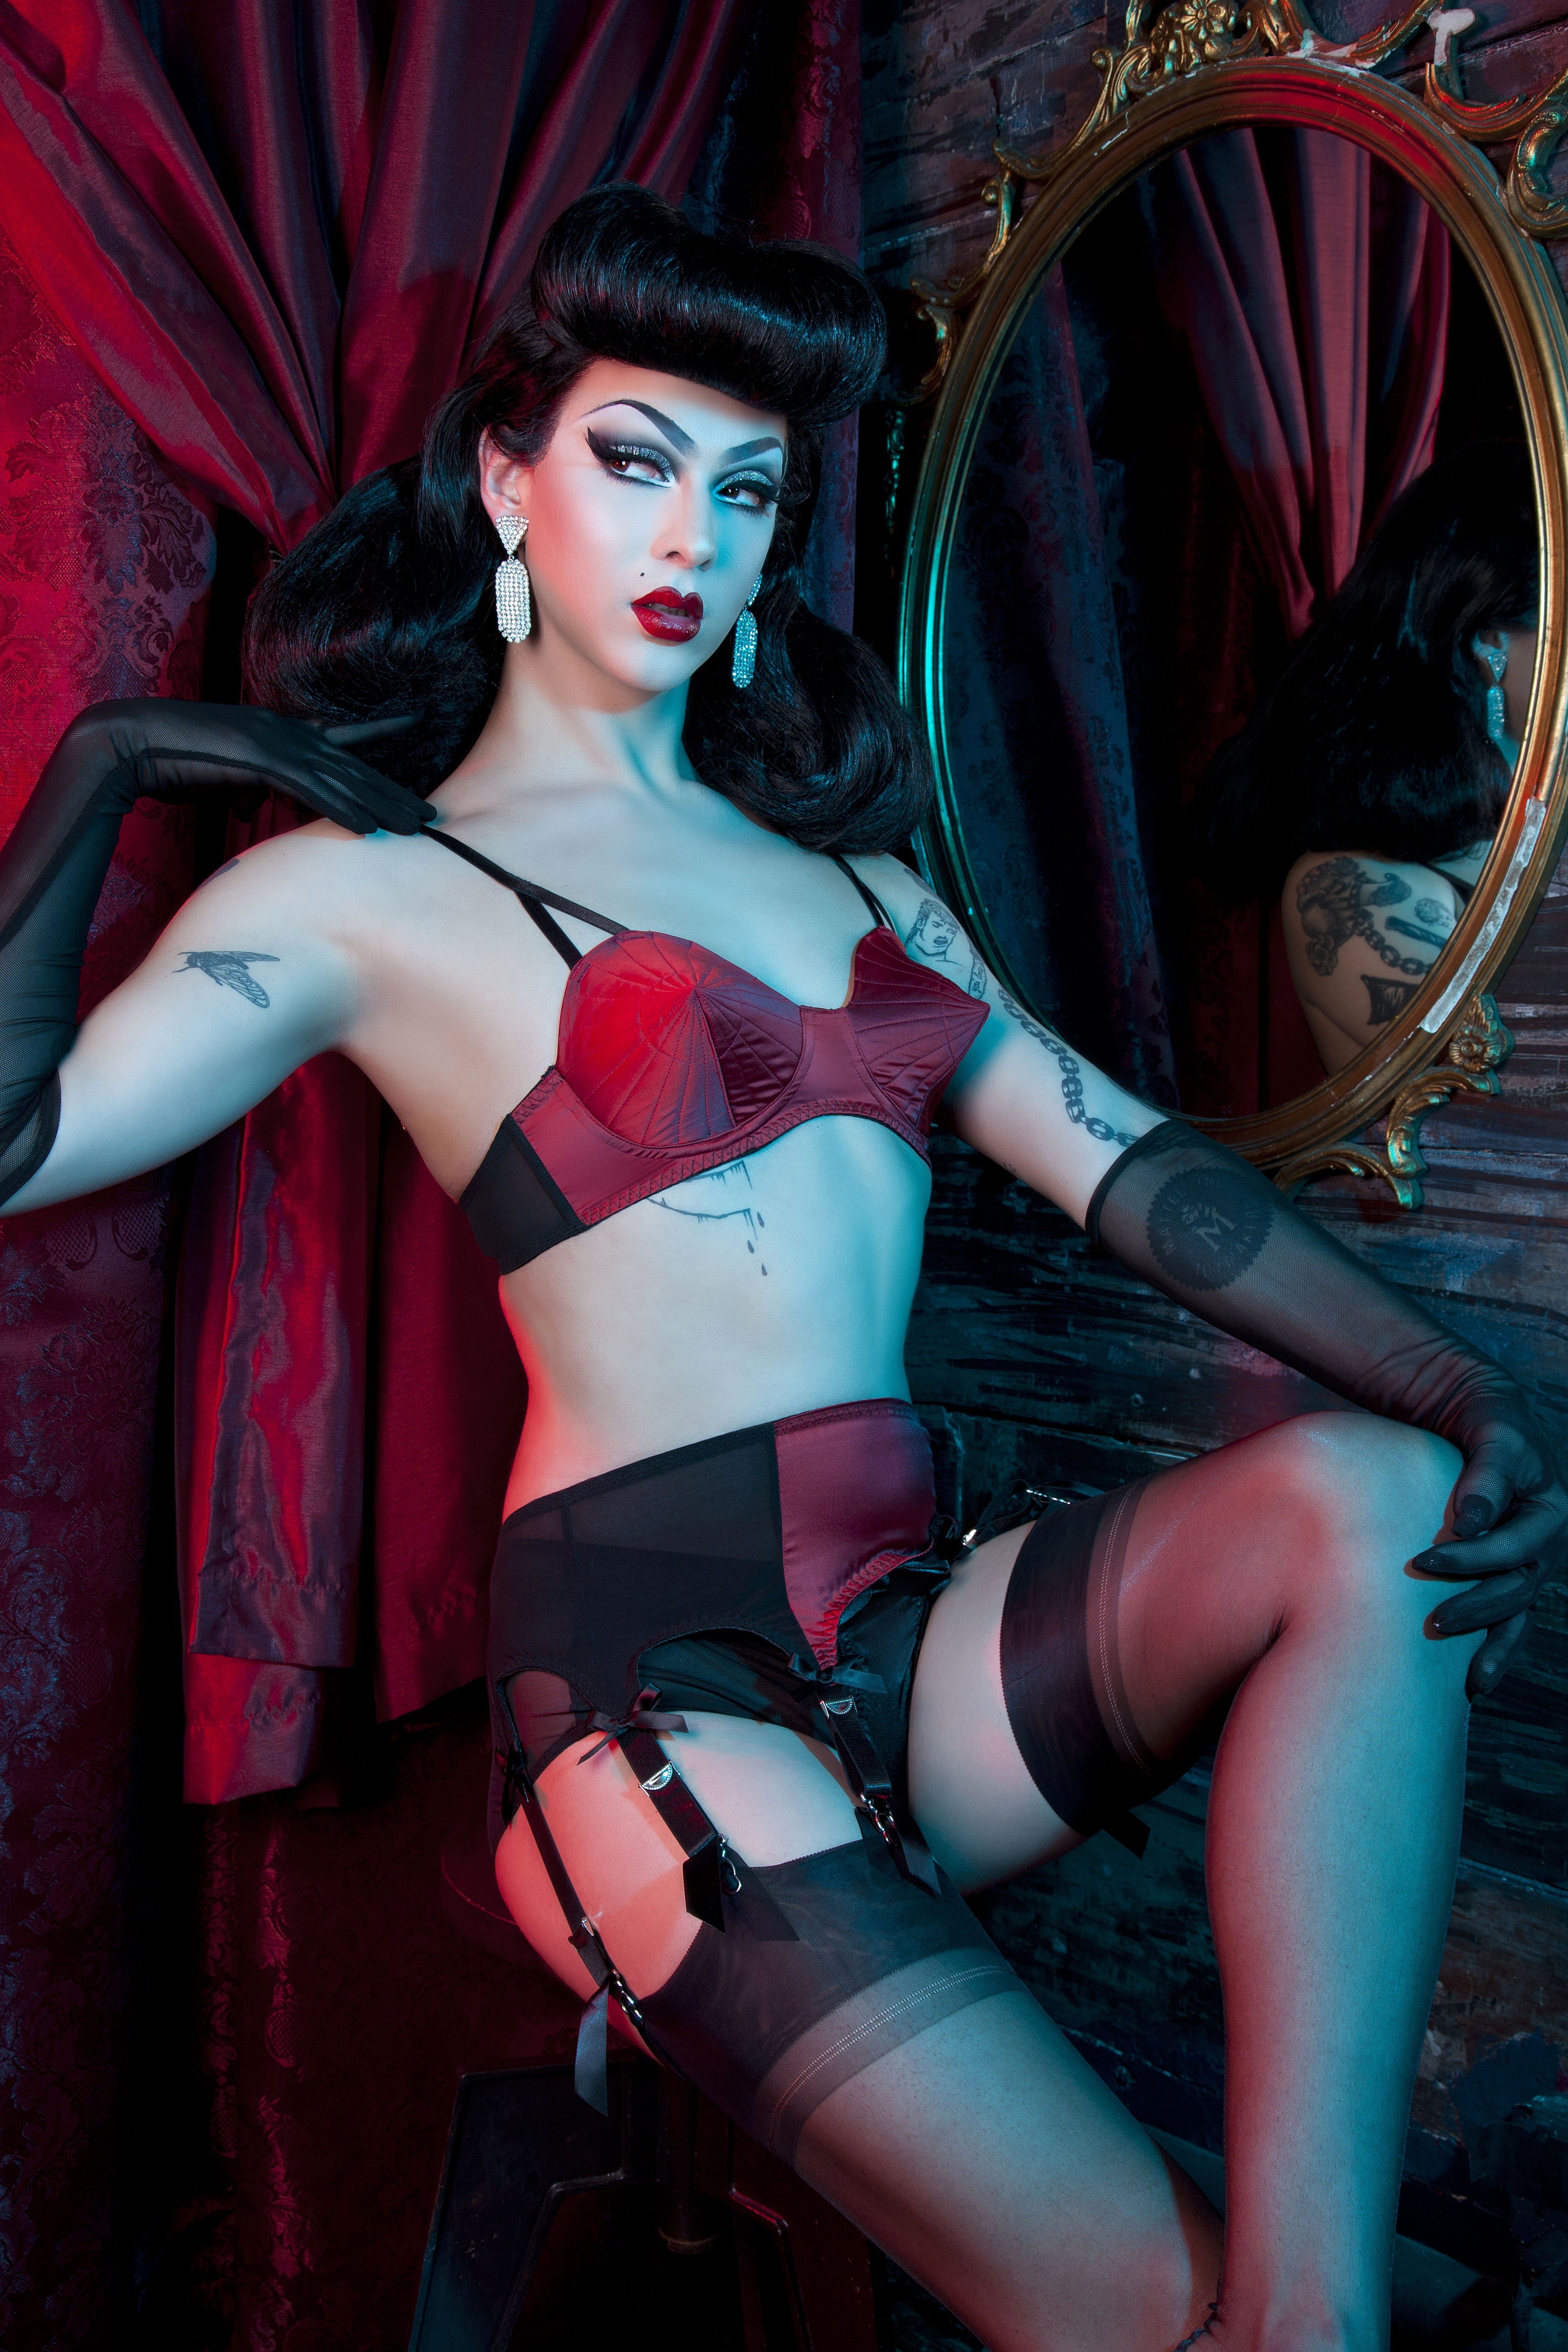 3e28a7f527 It was just announced that Violet Chachki is the first ever drag queen to  be the face of a women s lingerie campaign. To mark the momentous occasion  we ...